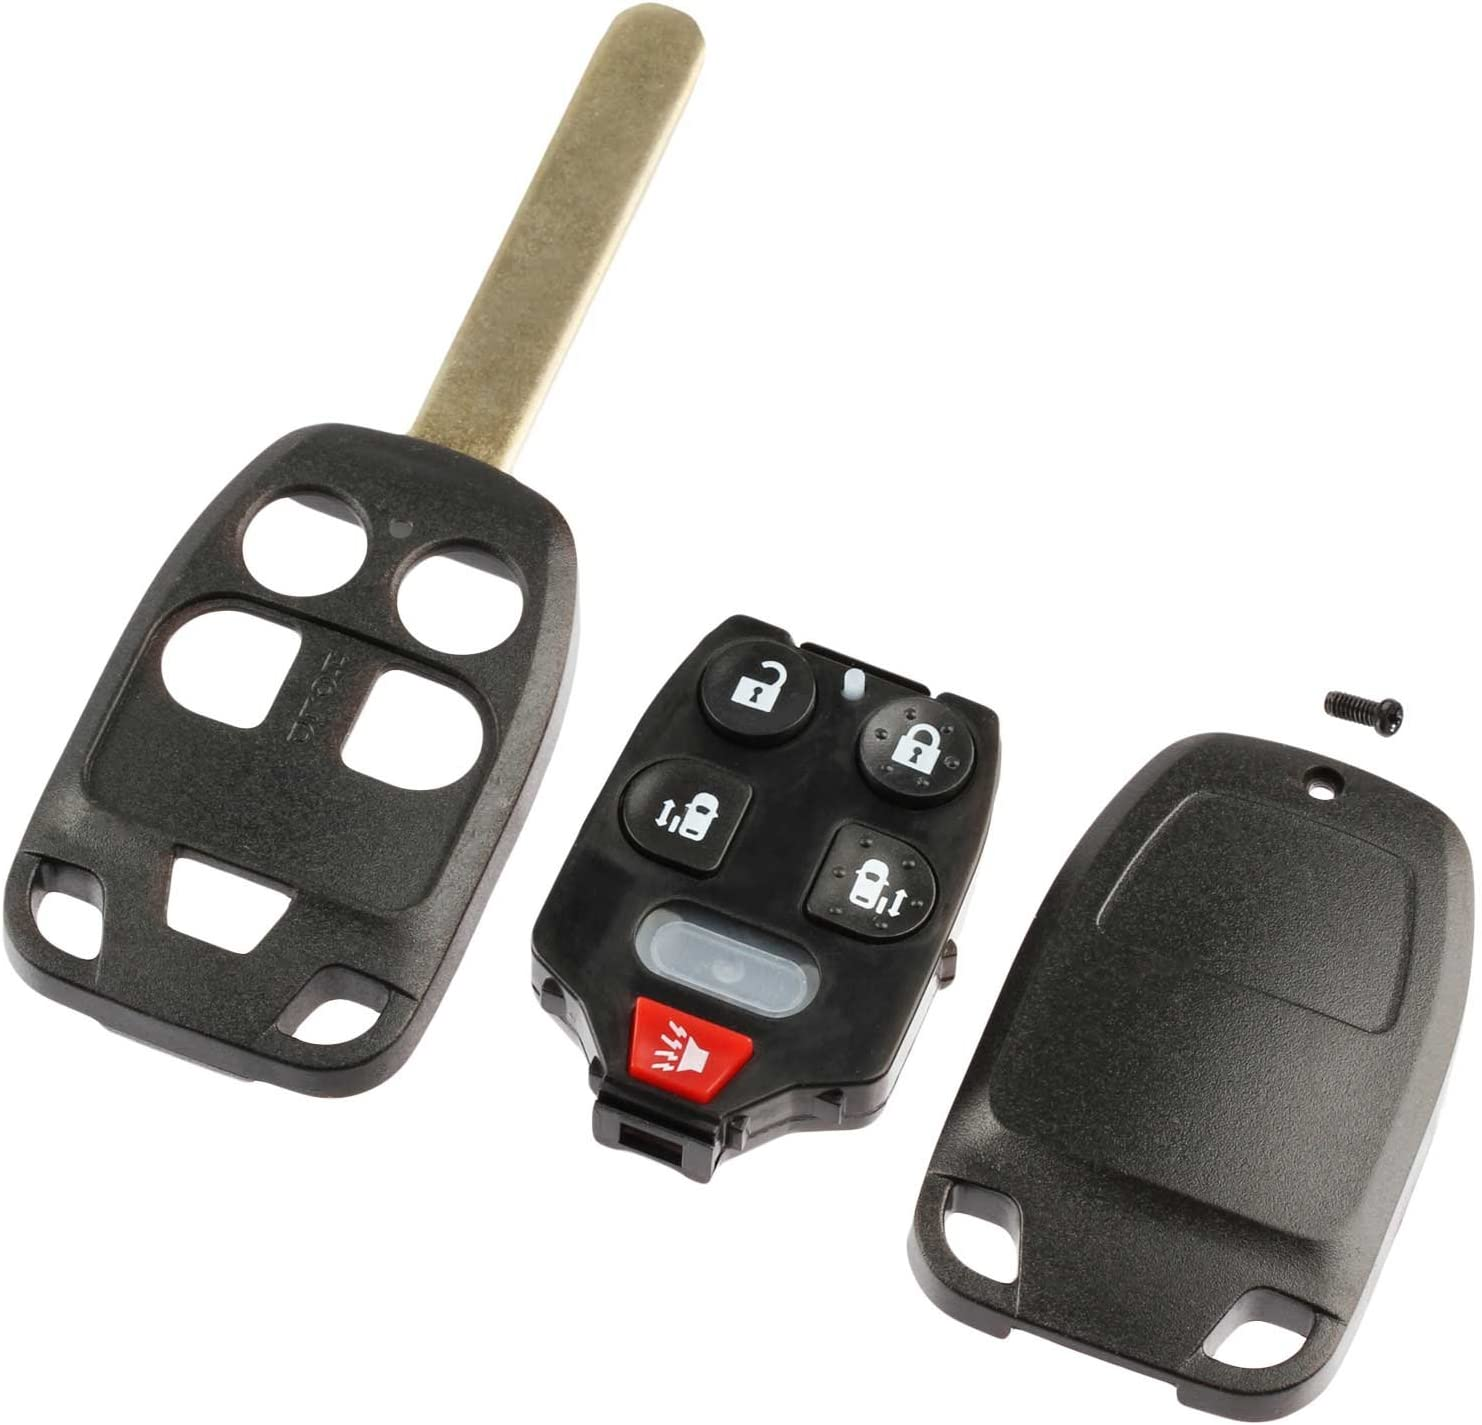 6-Buttons Replacement Car Key Fob Entry Remote Fit for Honda Odyssey 2011 2012 2013 FCC ID: N5F-A04TAA